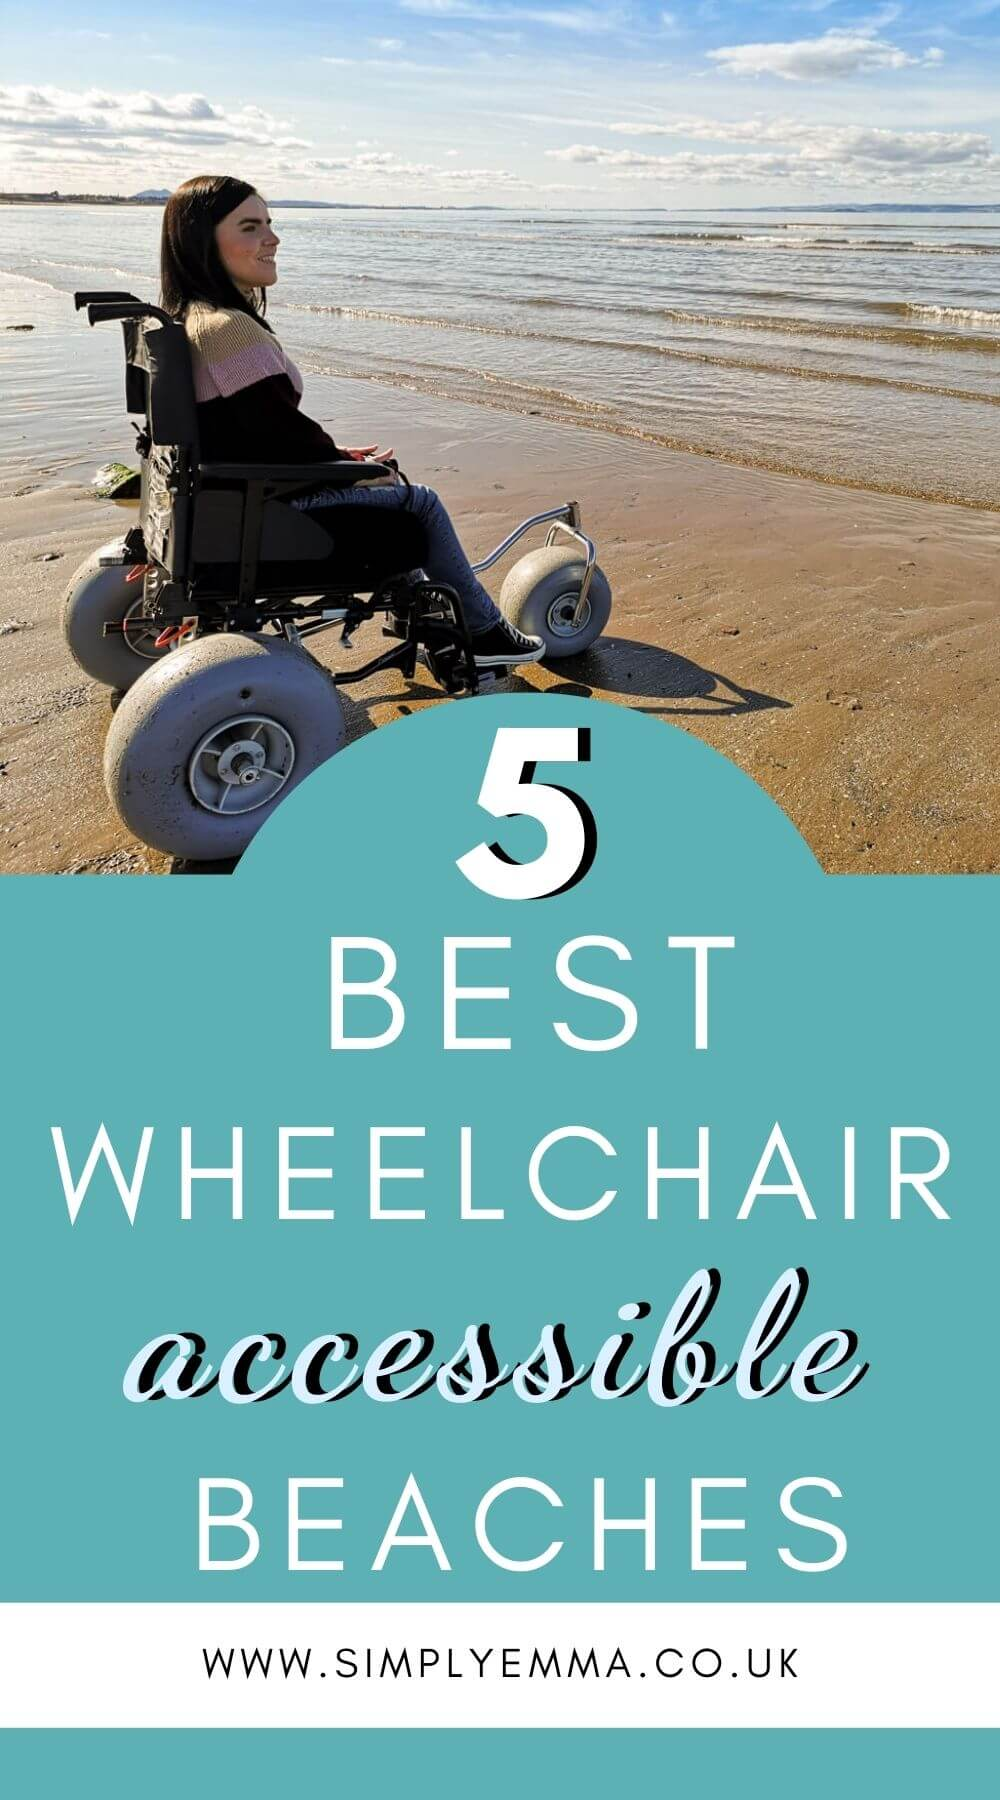 Best Wheelchair Accessible Beaches in the UK